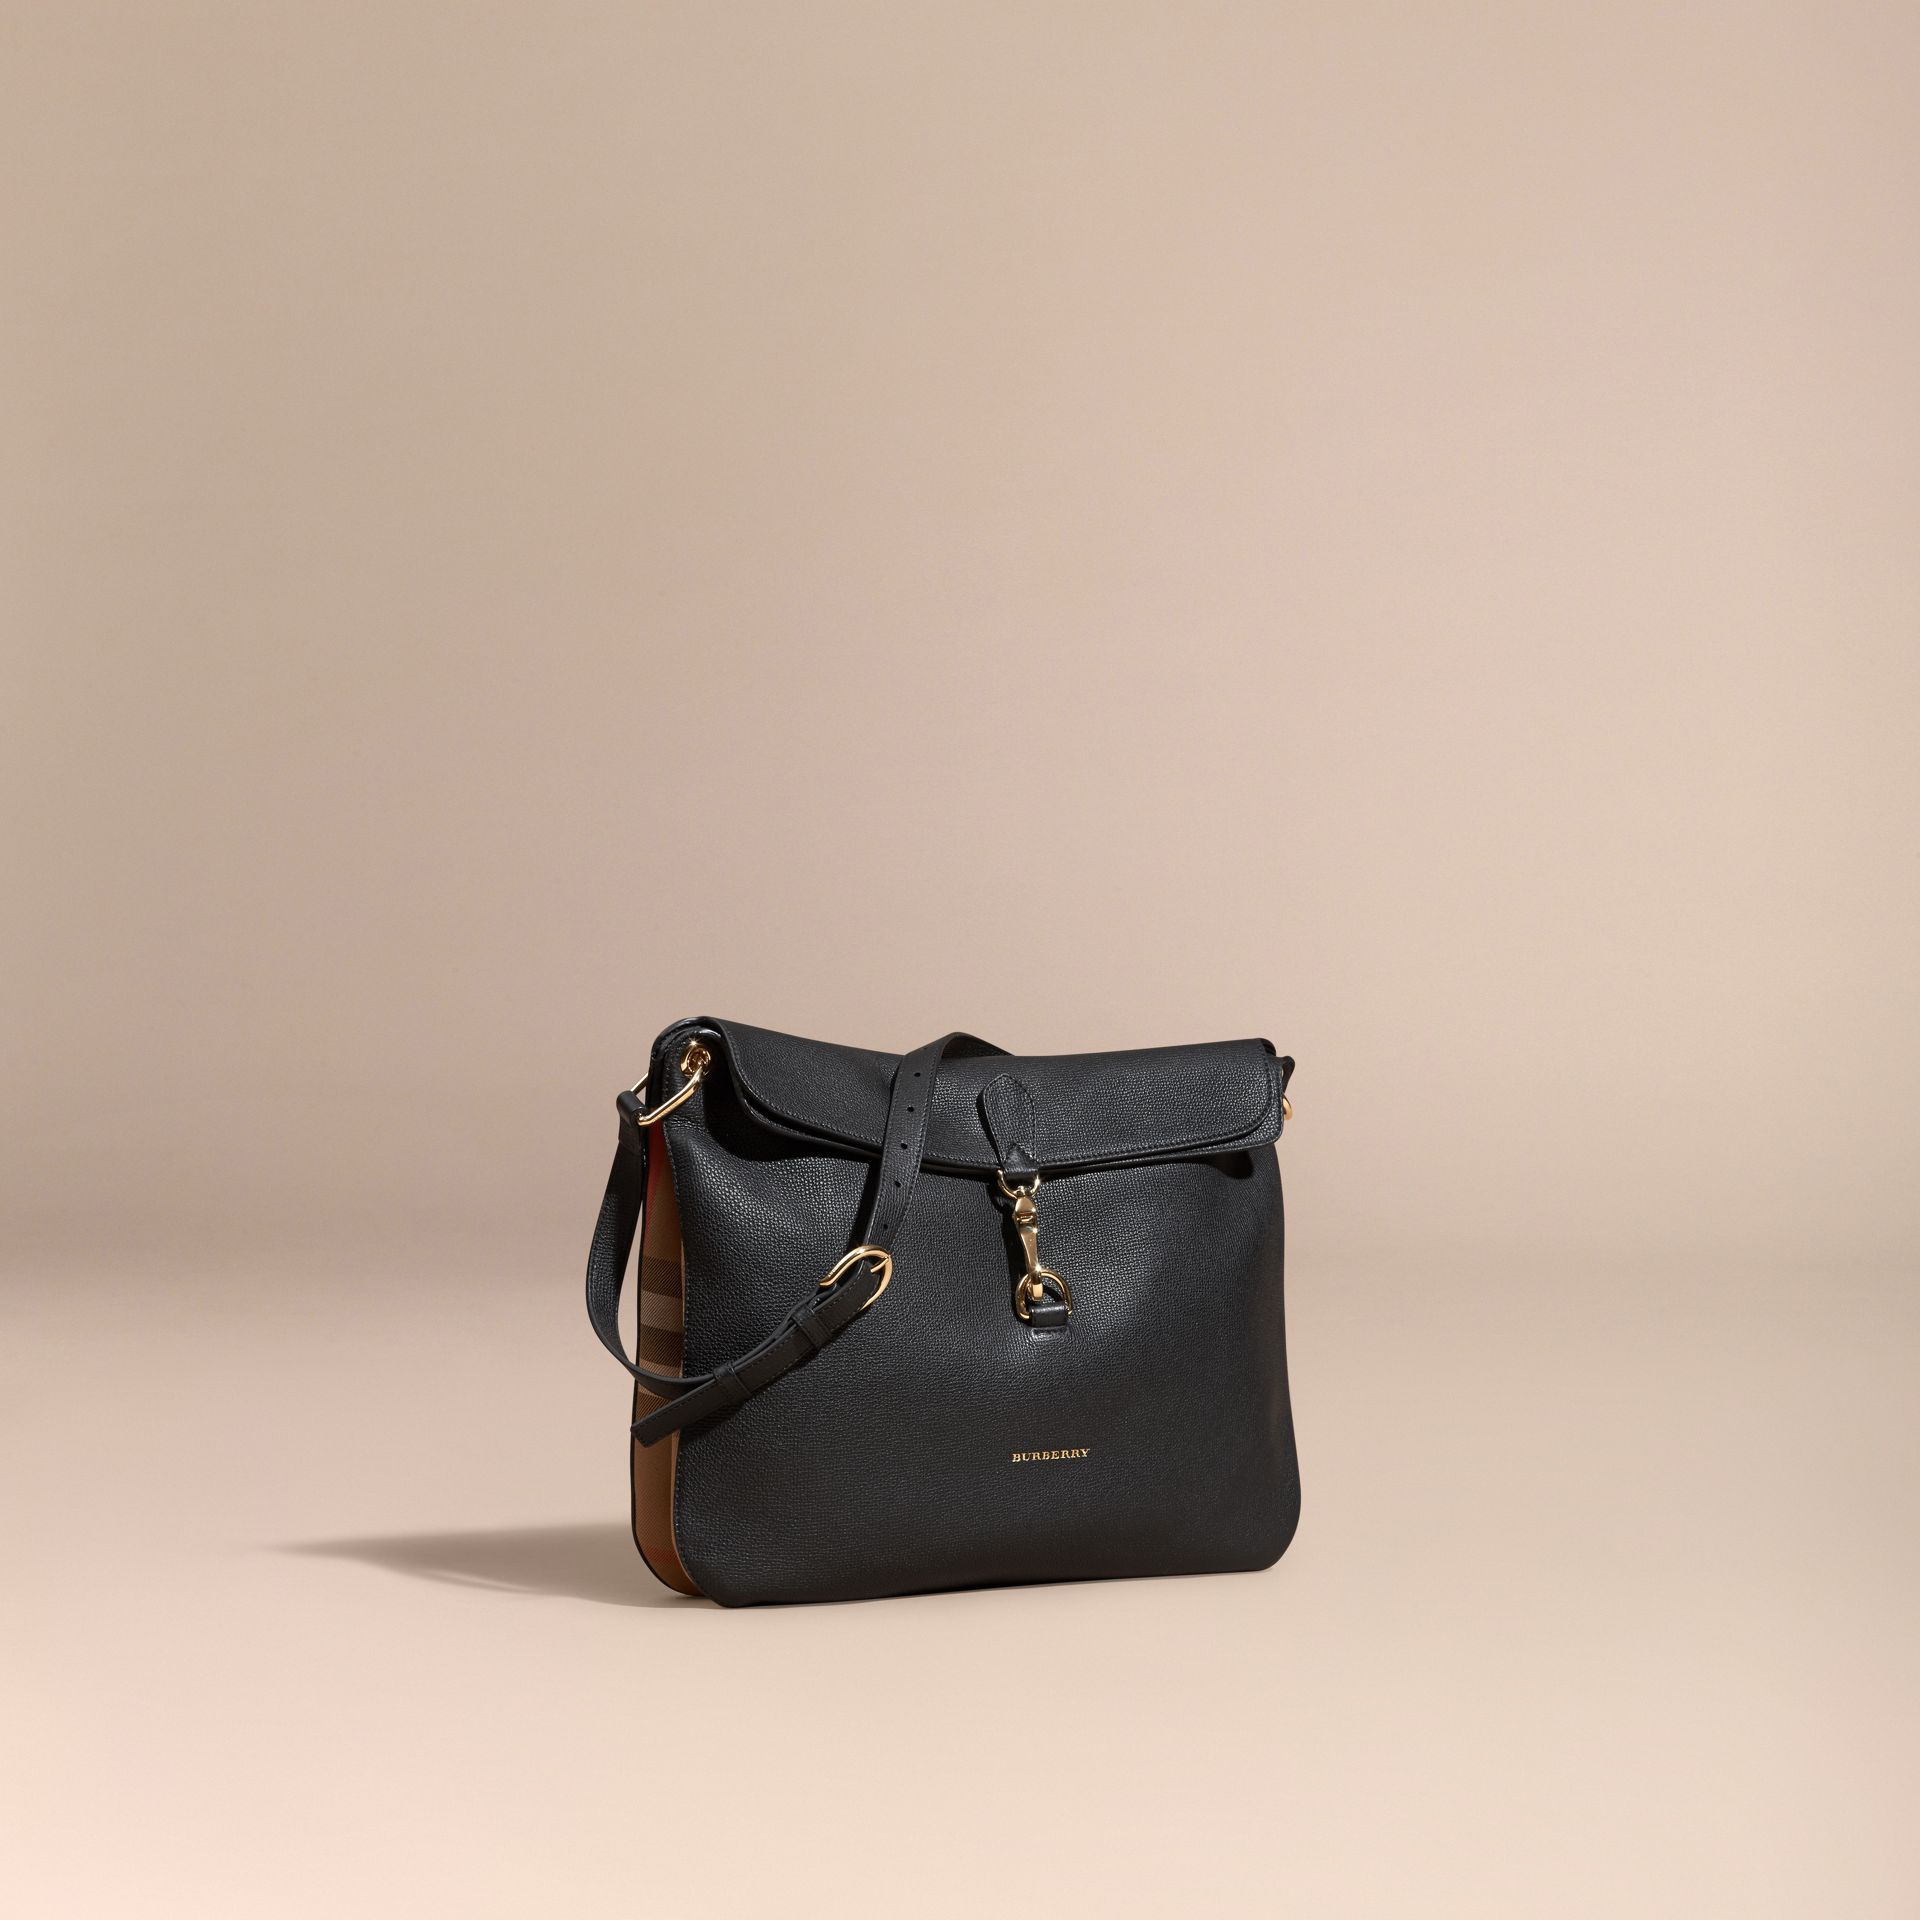 Black Grainy Leather and House Check Shoulder Bag Black - gallery image 1